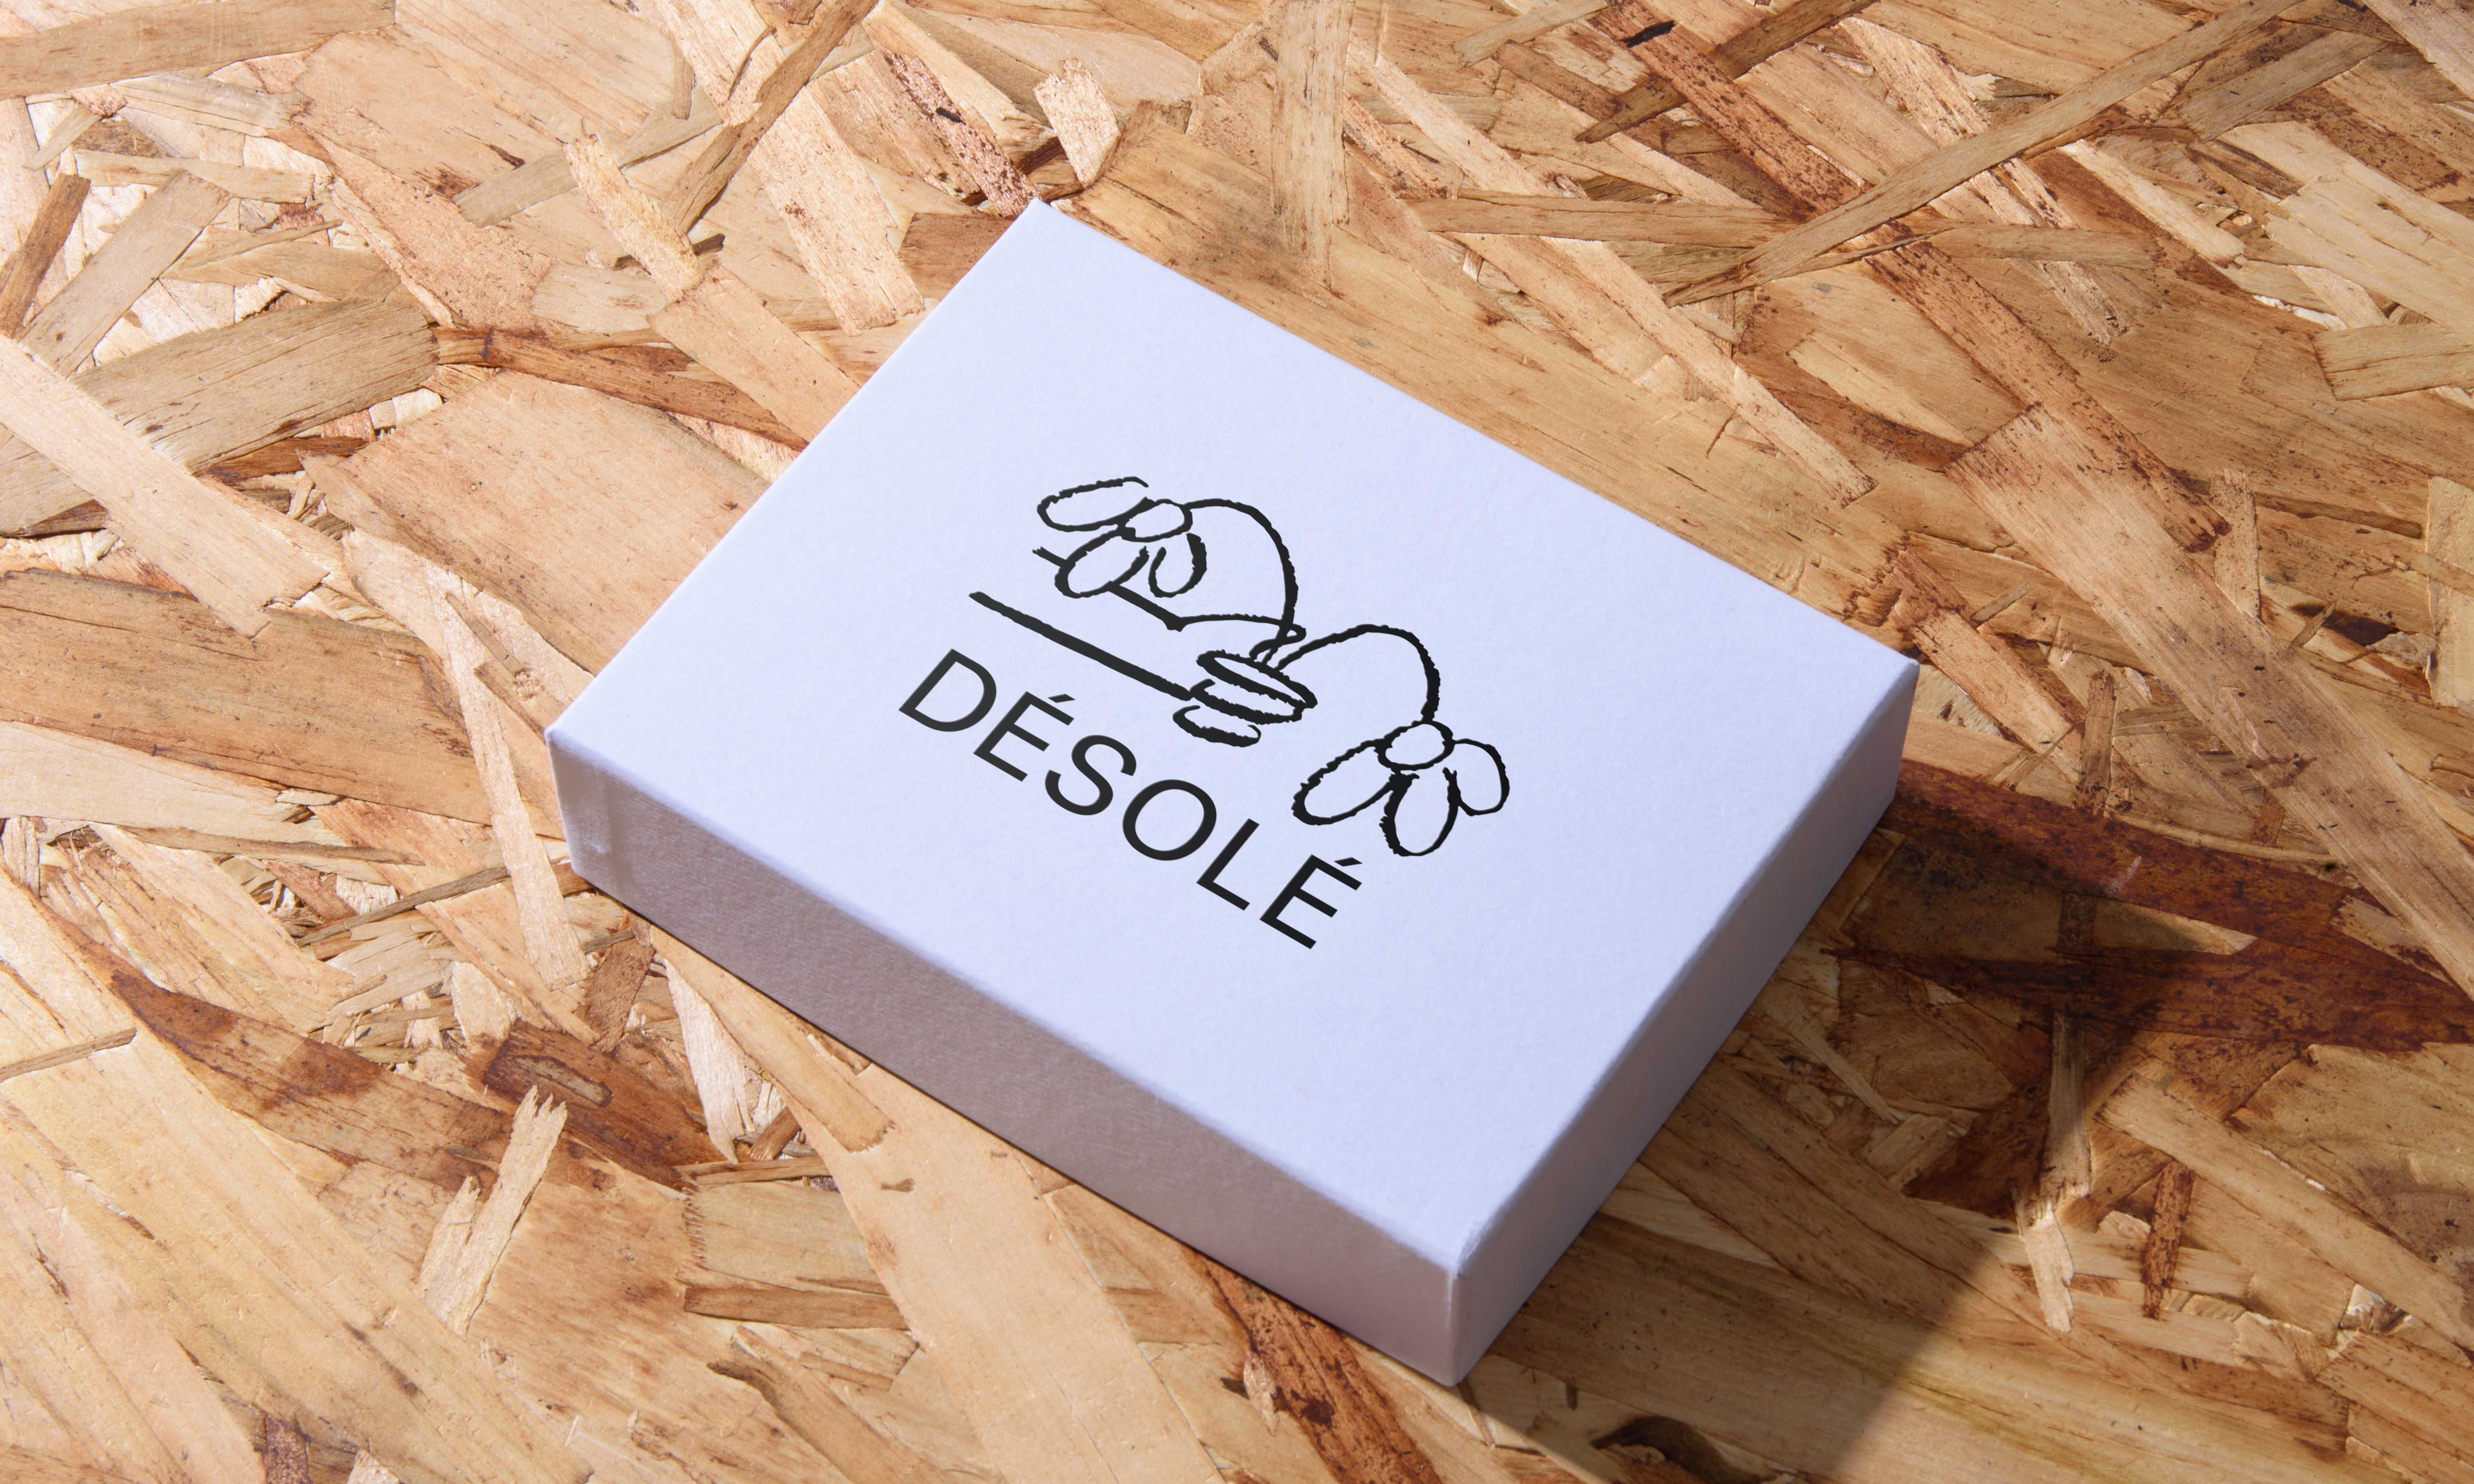 White packaging box with Desole's Branding